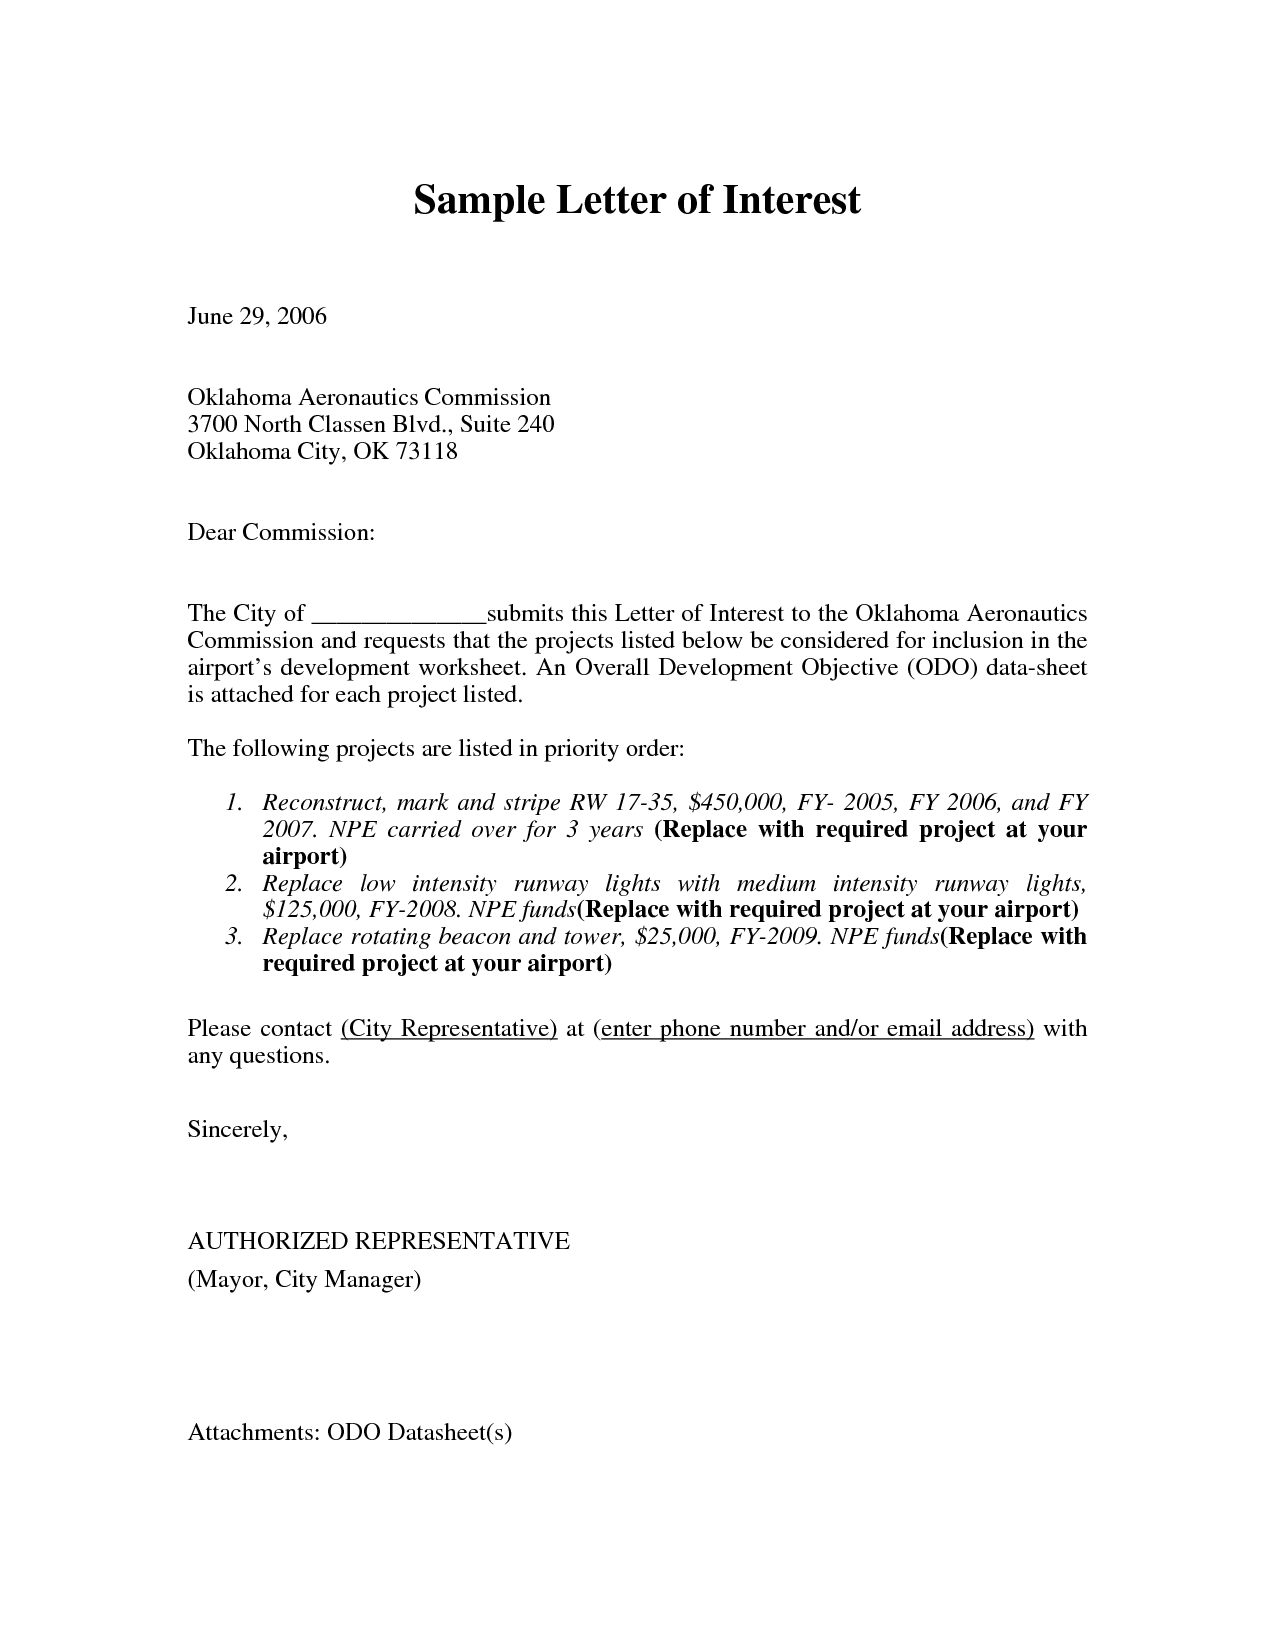 Letter of Interest Internal Position Sample and Letter of interest templates